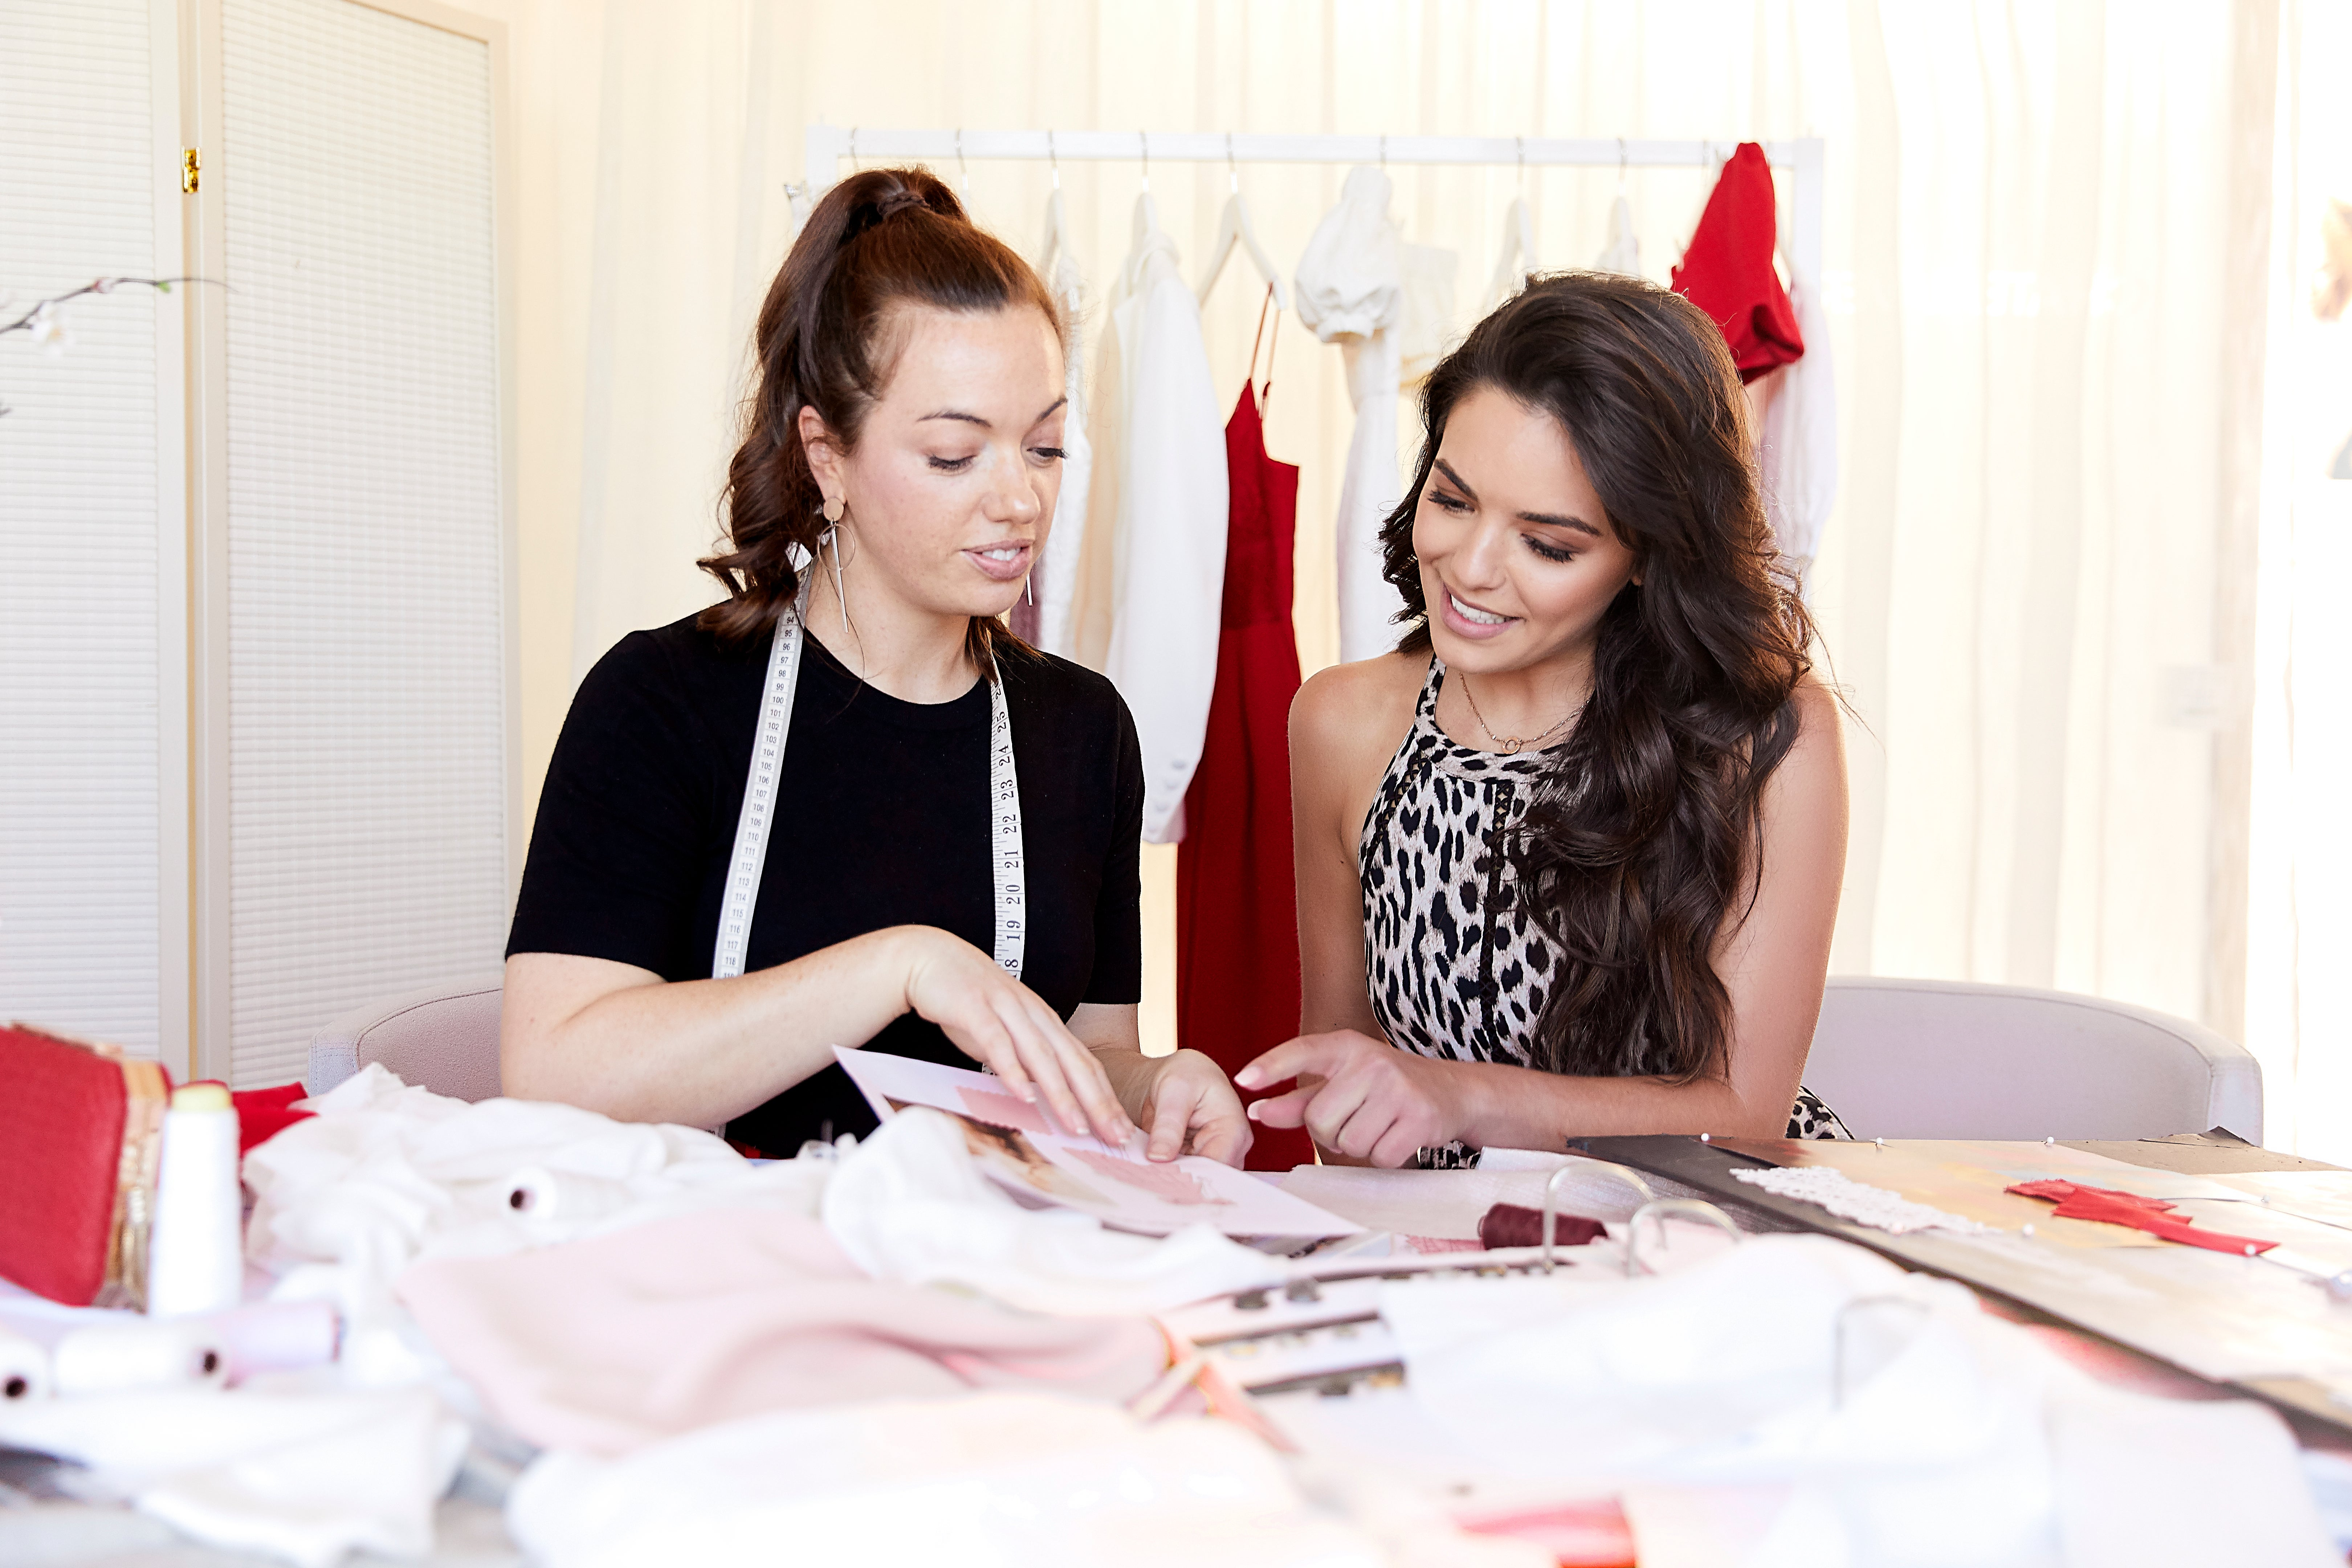 Two people looking at fabric for garment.